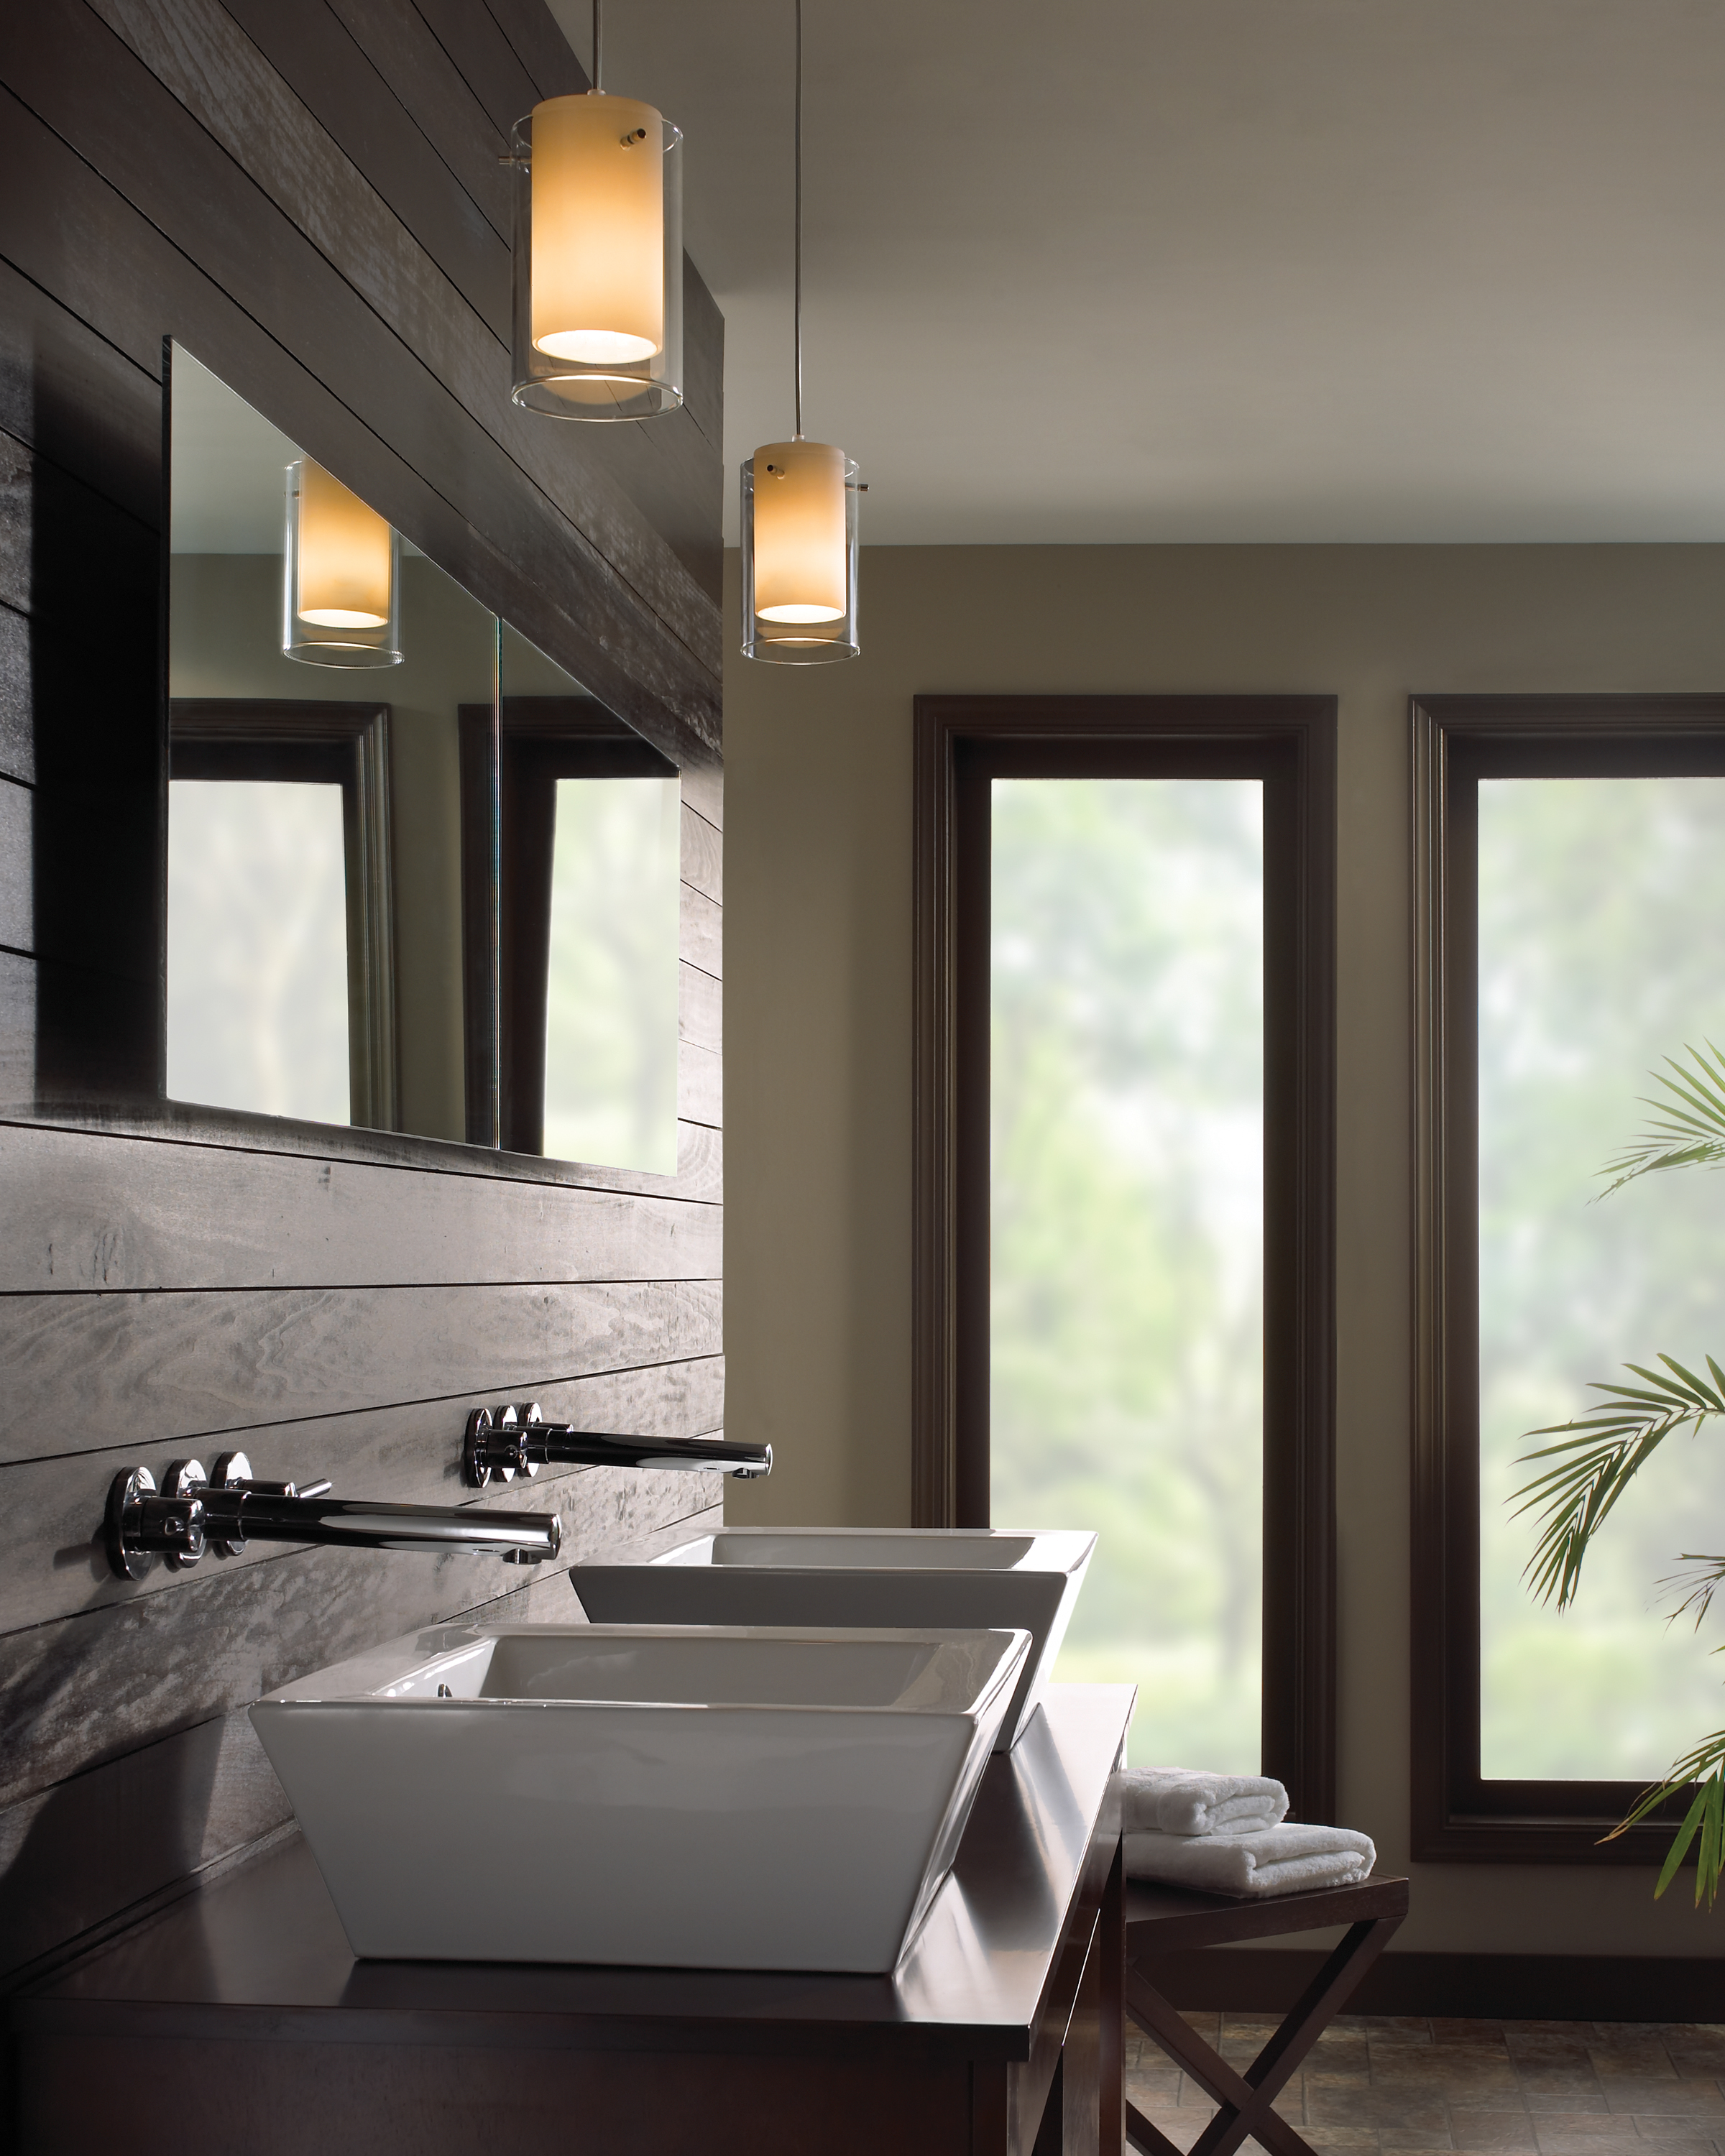 Bathroom Lighting Ideas: 301 Moved Permanently